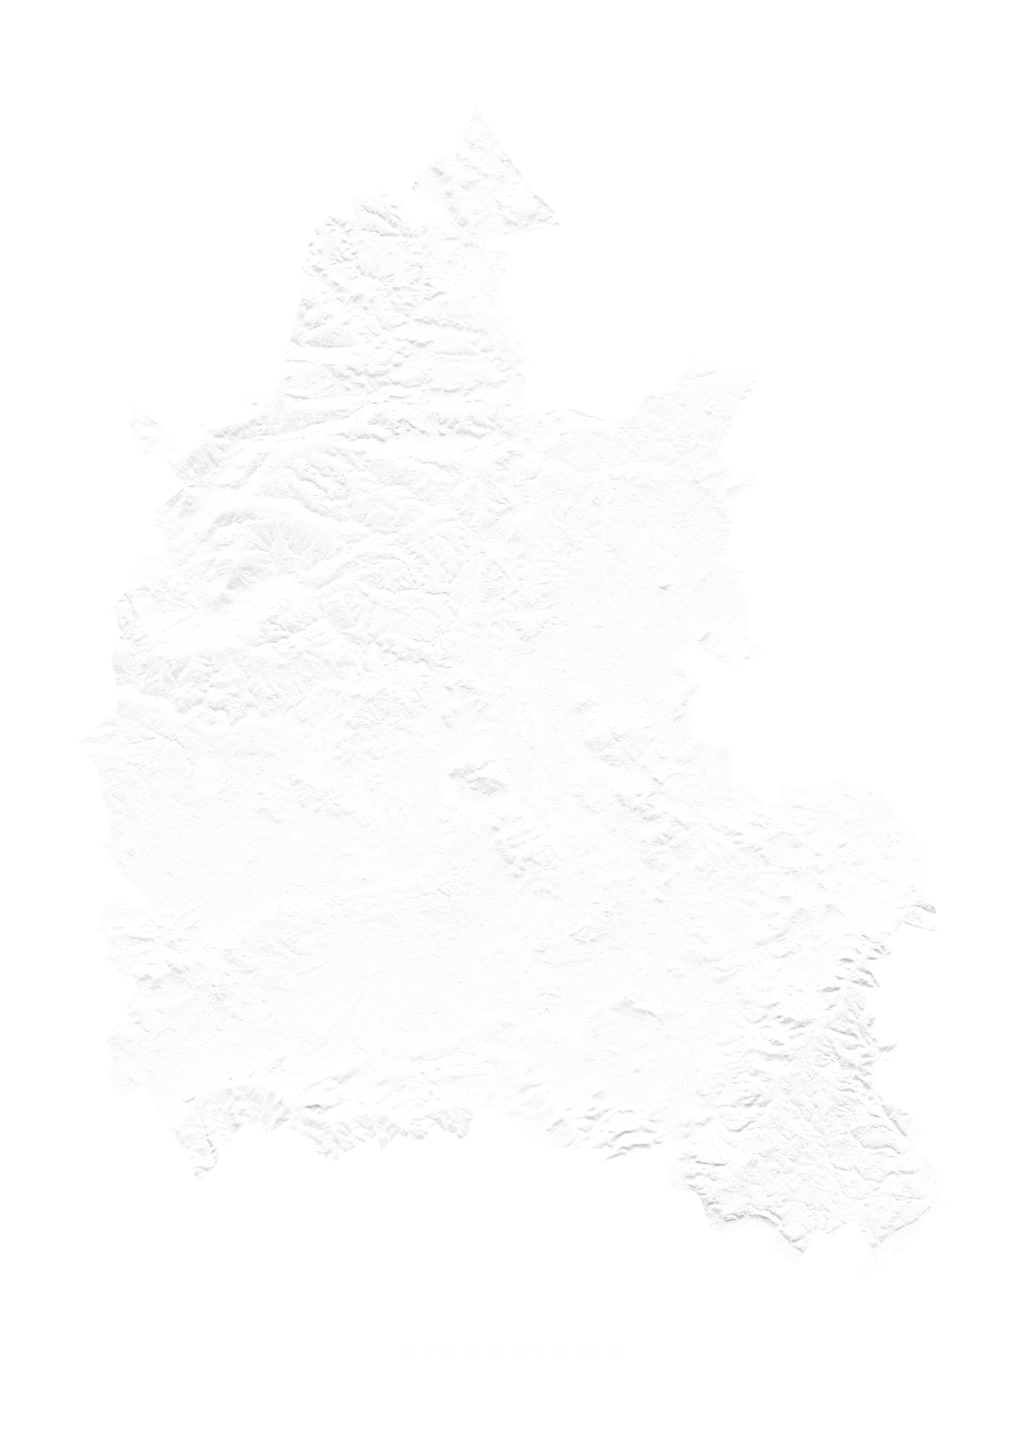 Oxfordshire wall map